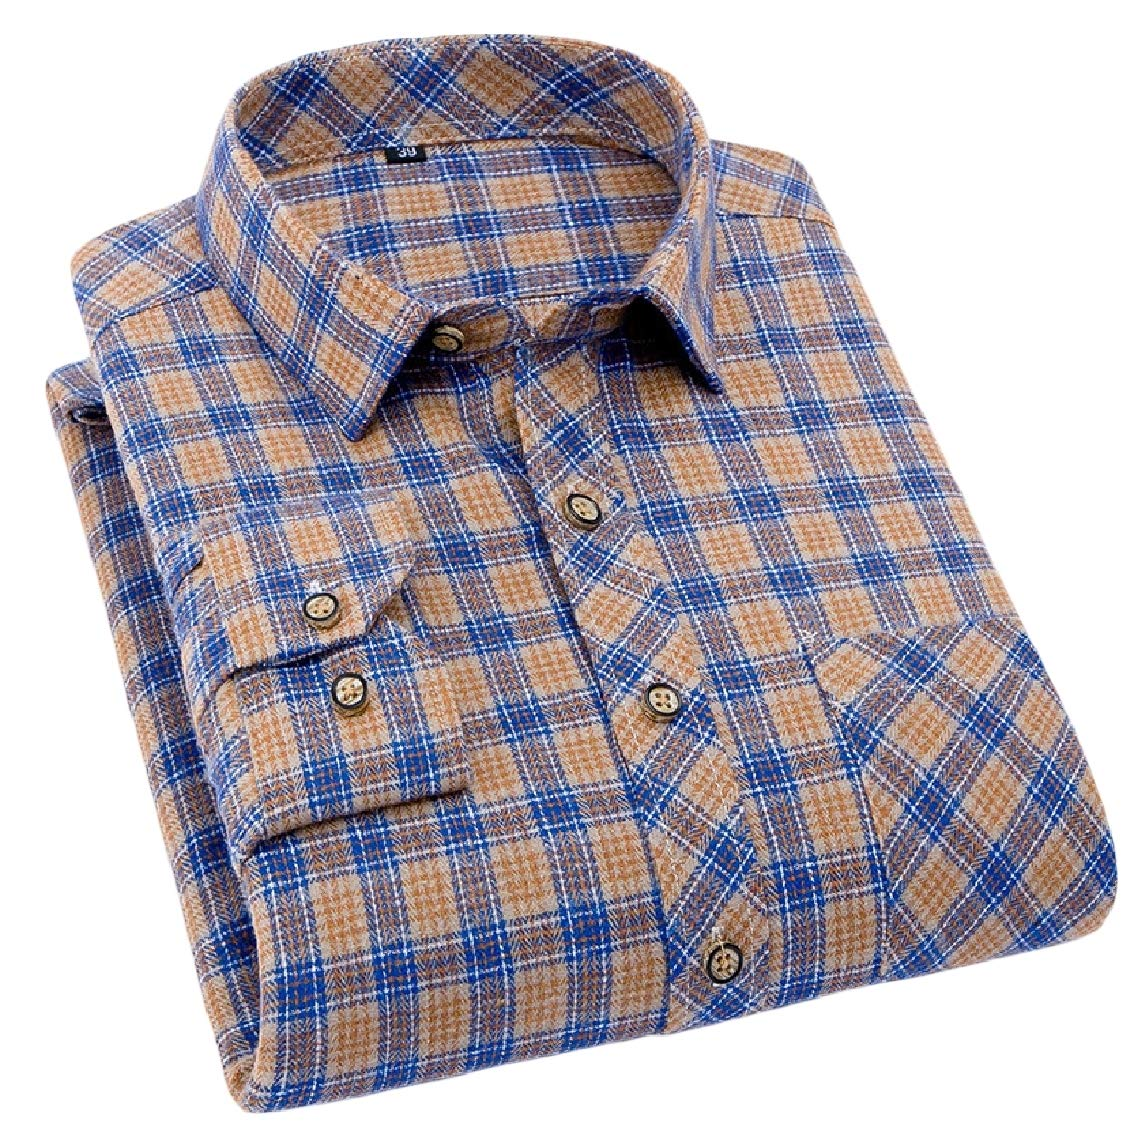 Sweatwater Mens Long Sleeve Checkered Tops Turn Down Button Up Shirts